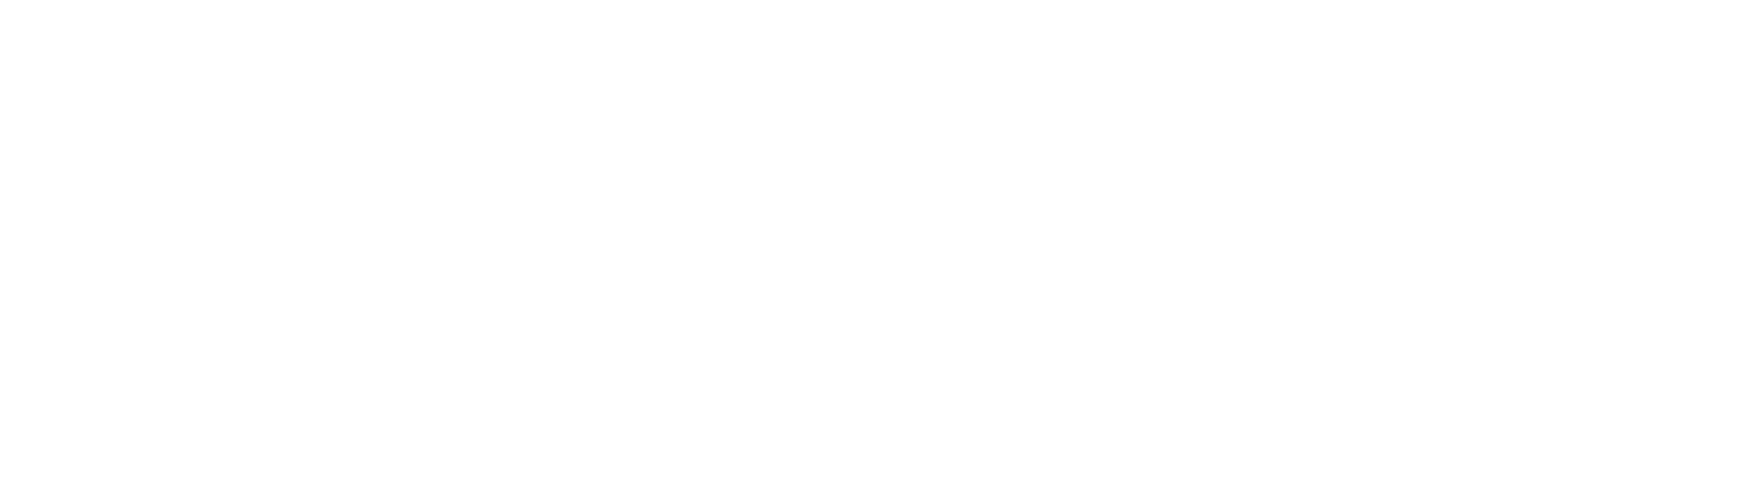 Technology Leadership Summit 2020